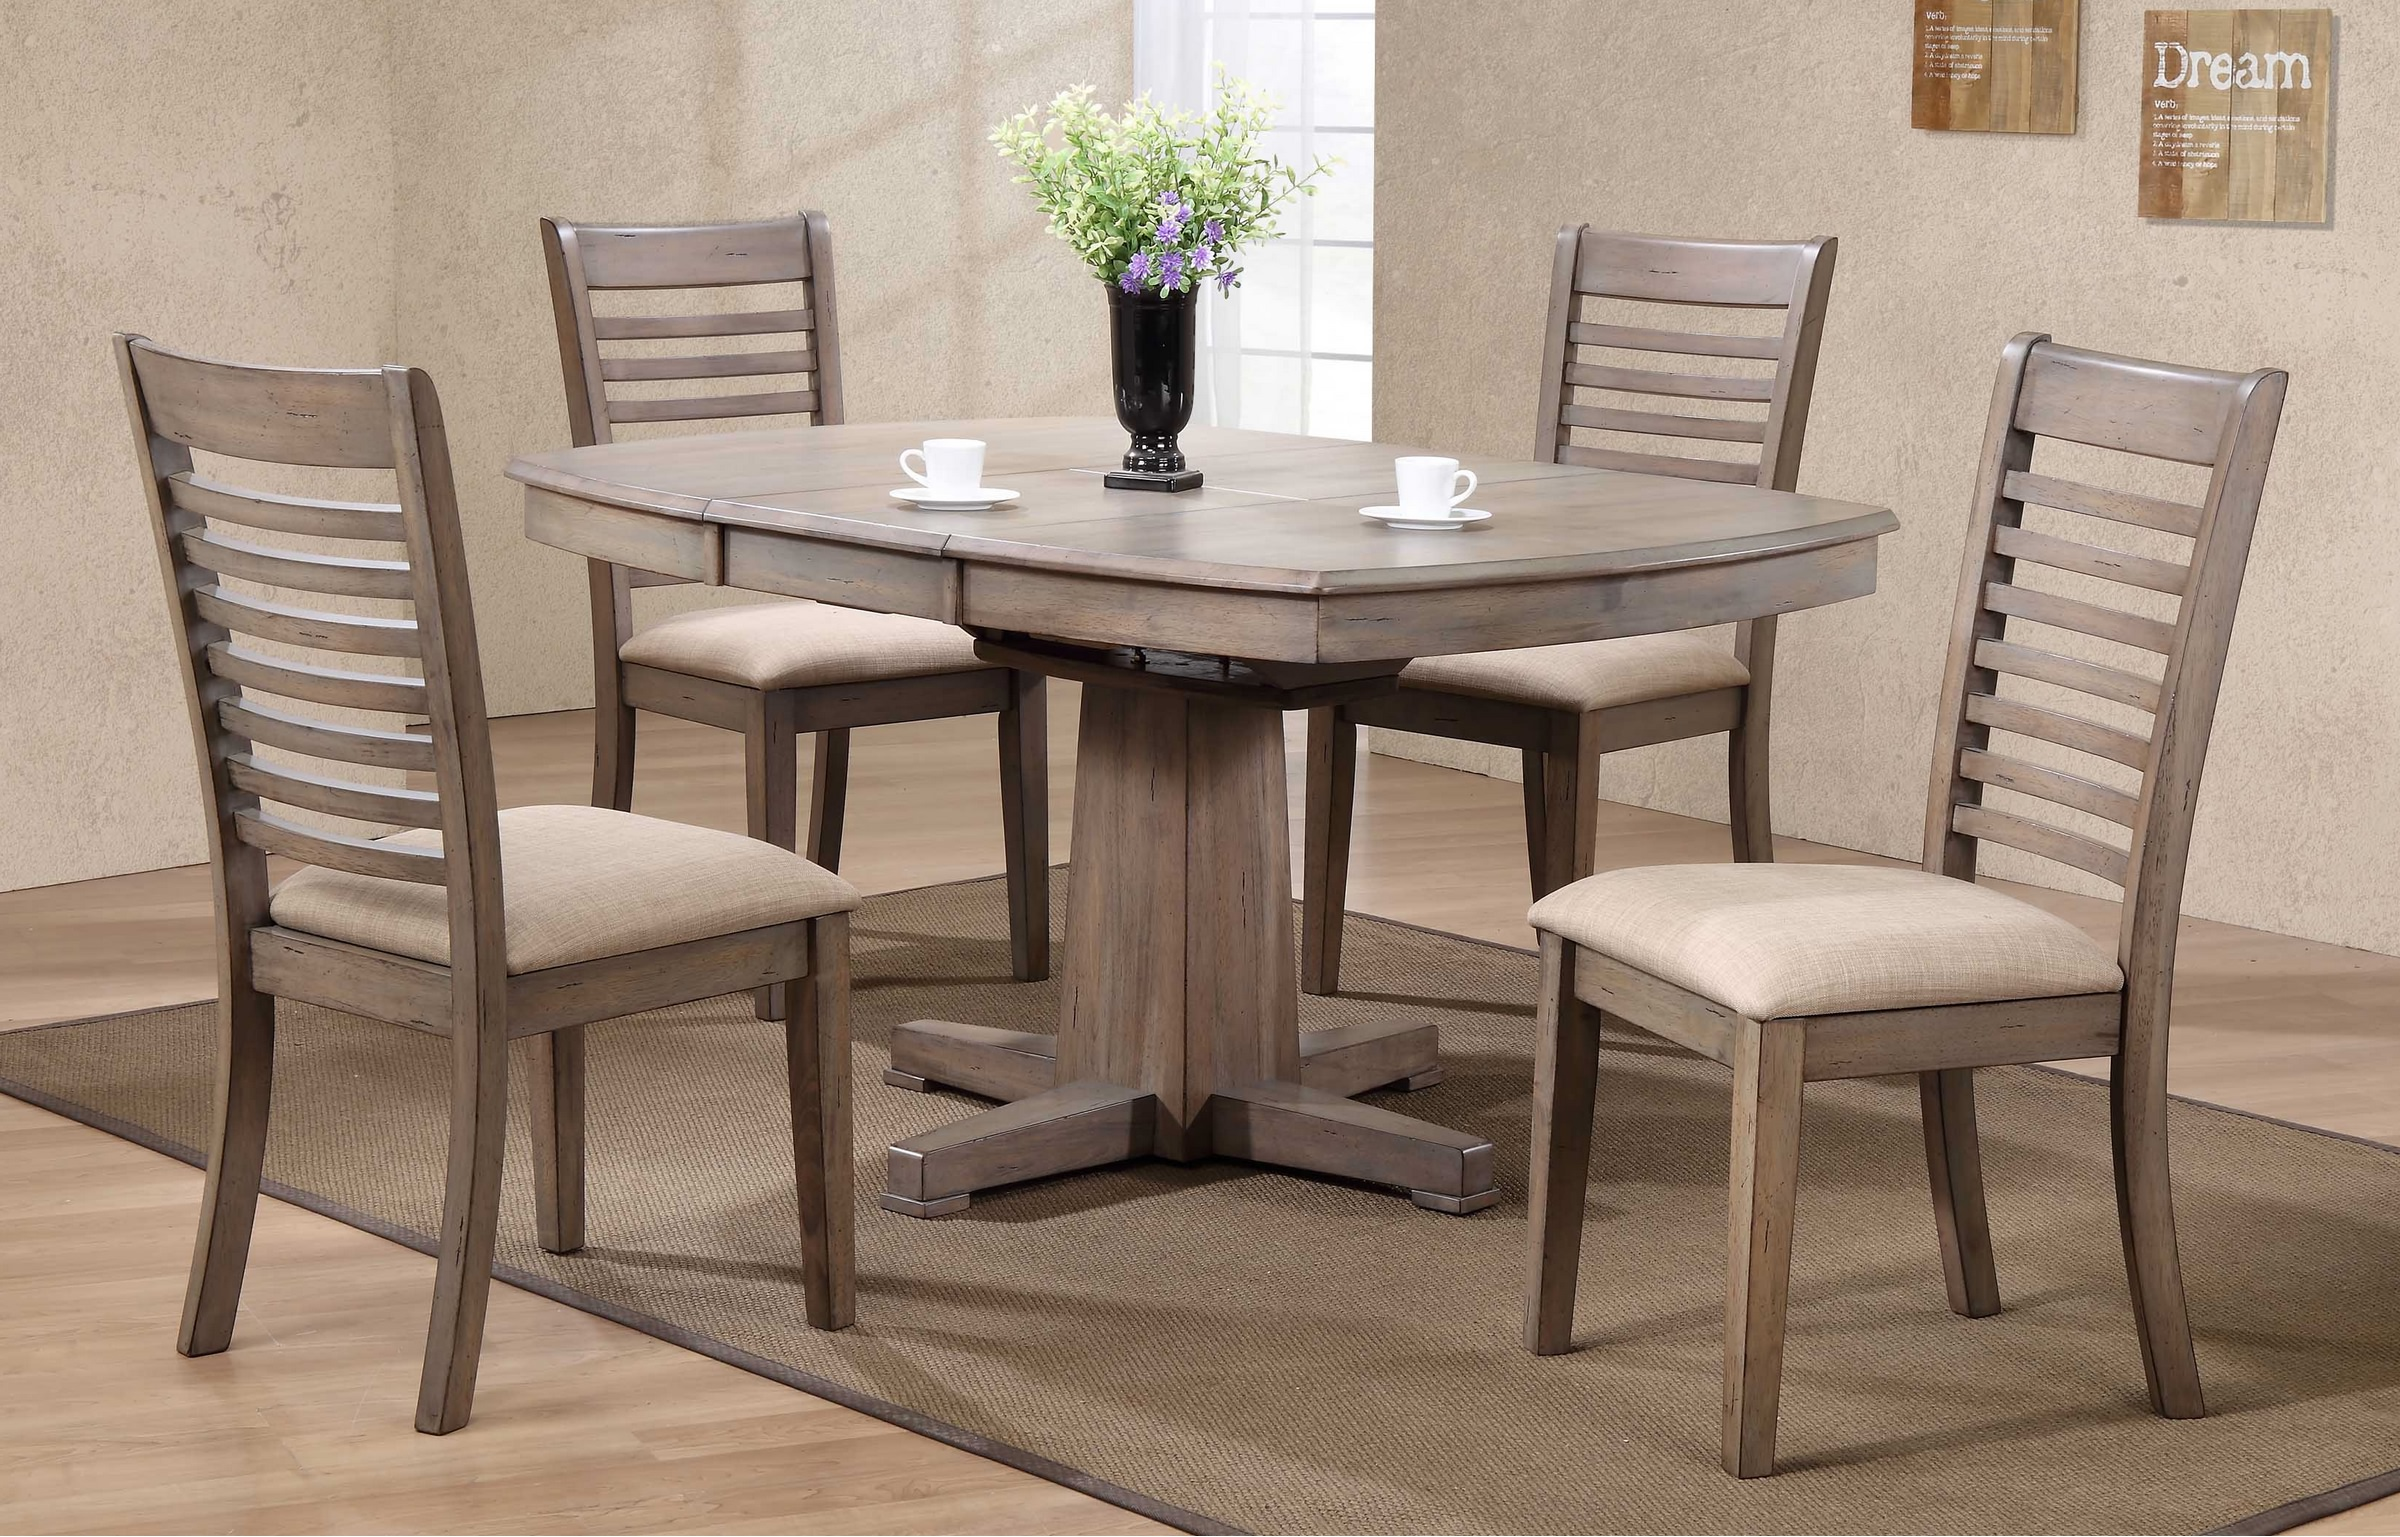 Ventura 57 Quot Pedestal Table Amp 4 Chairs In Grey Wash Finish By Winners Only